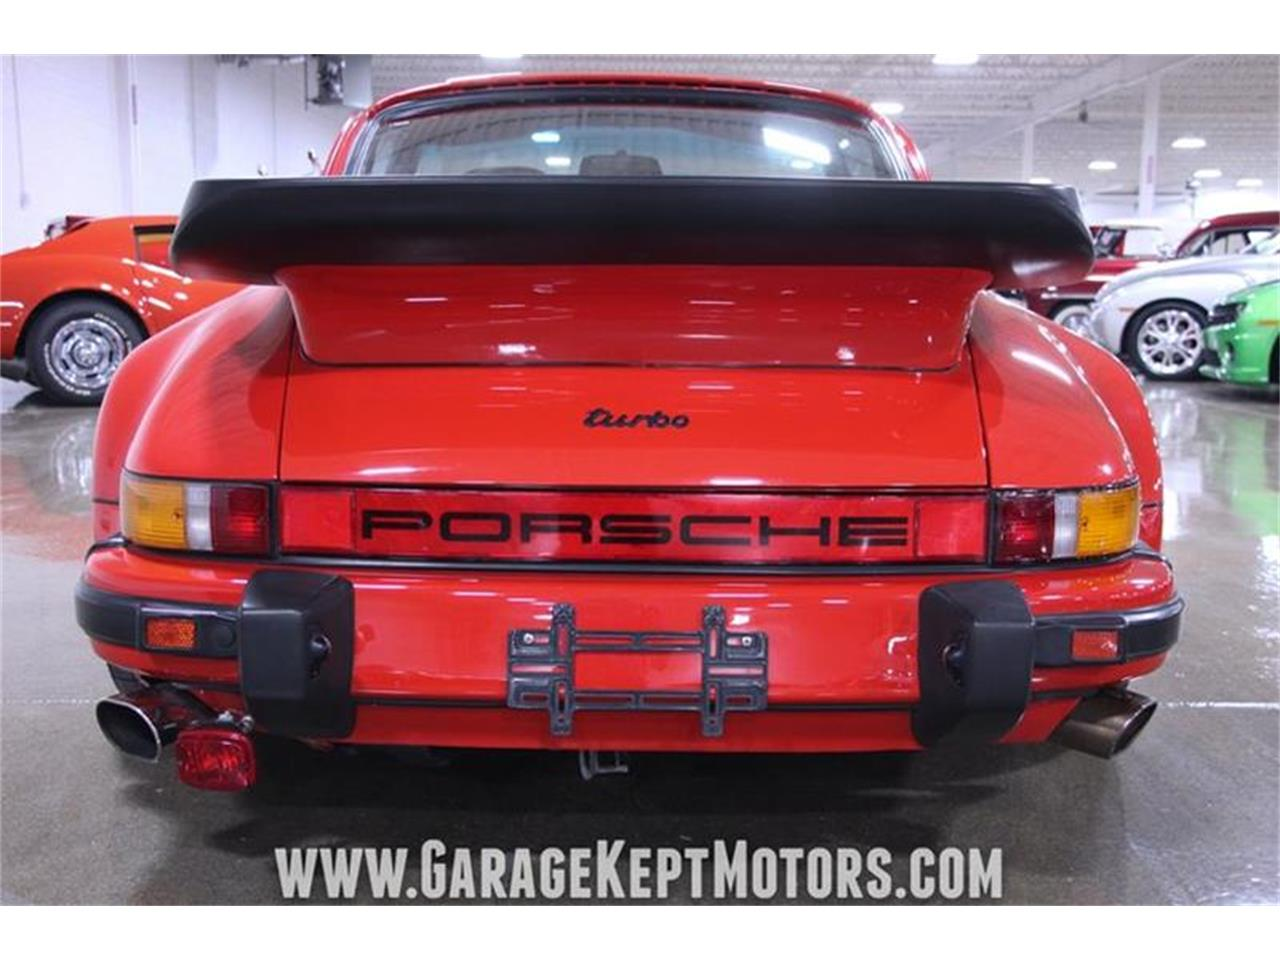 Large Picture of '82 Porsche 911 located in Michigan - $109,900.00 Offered by Garage Kept Motors - Q470